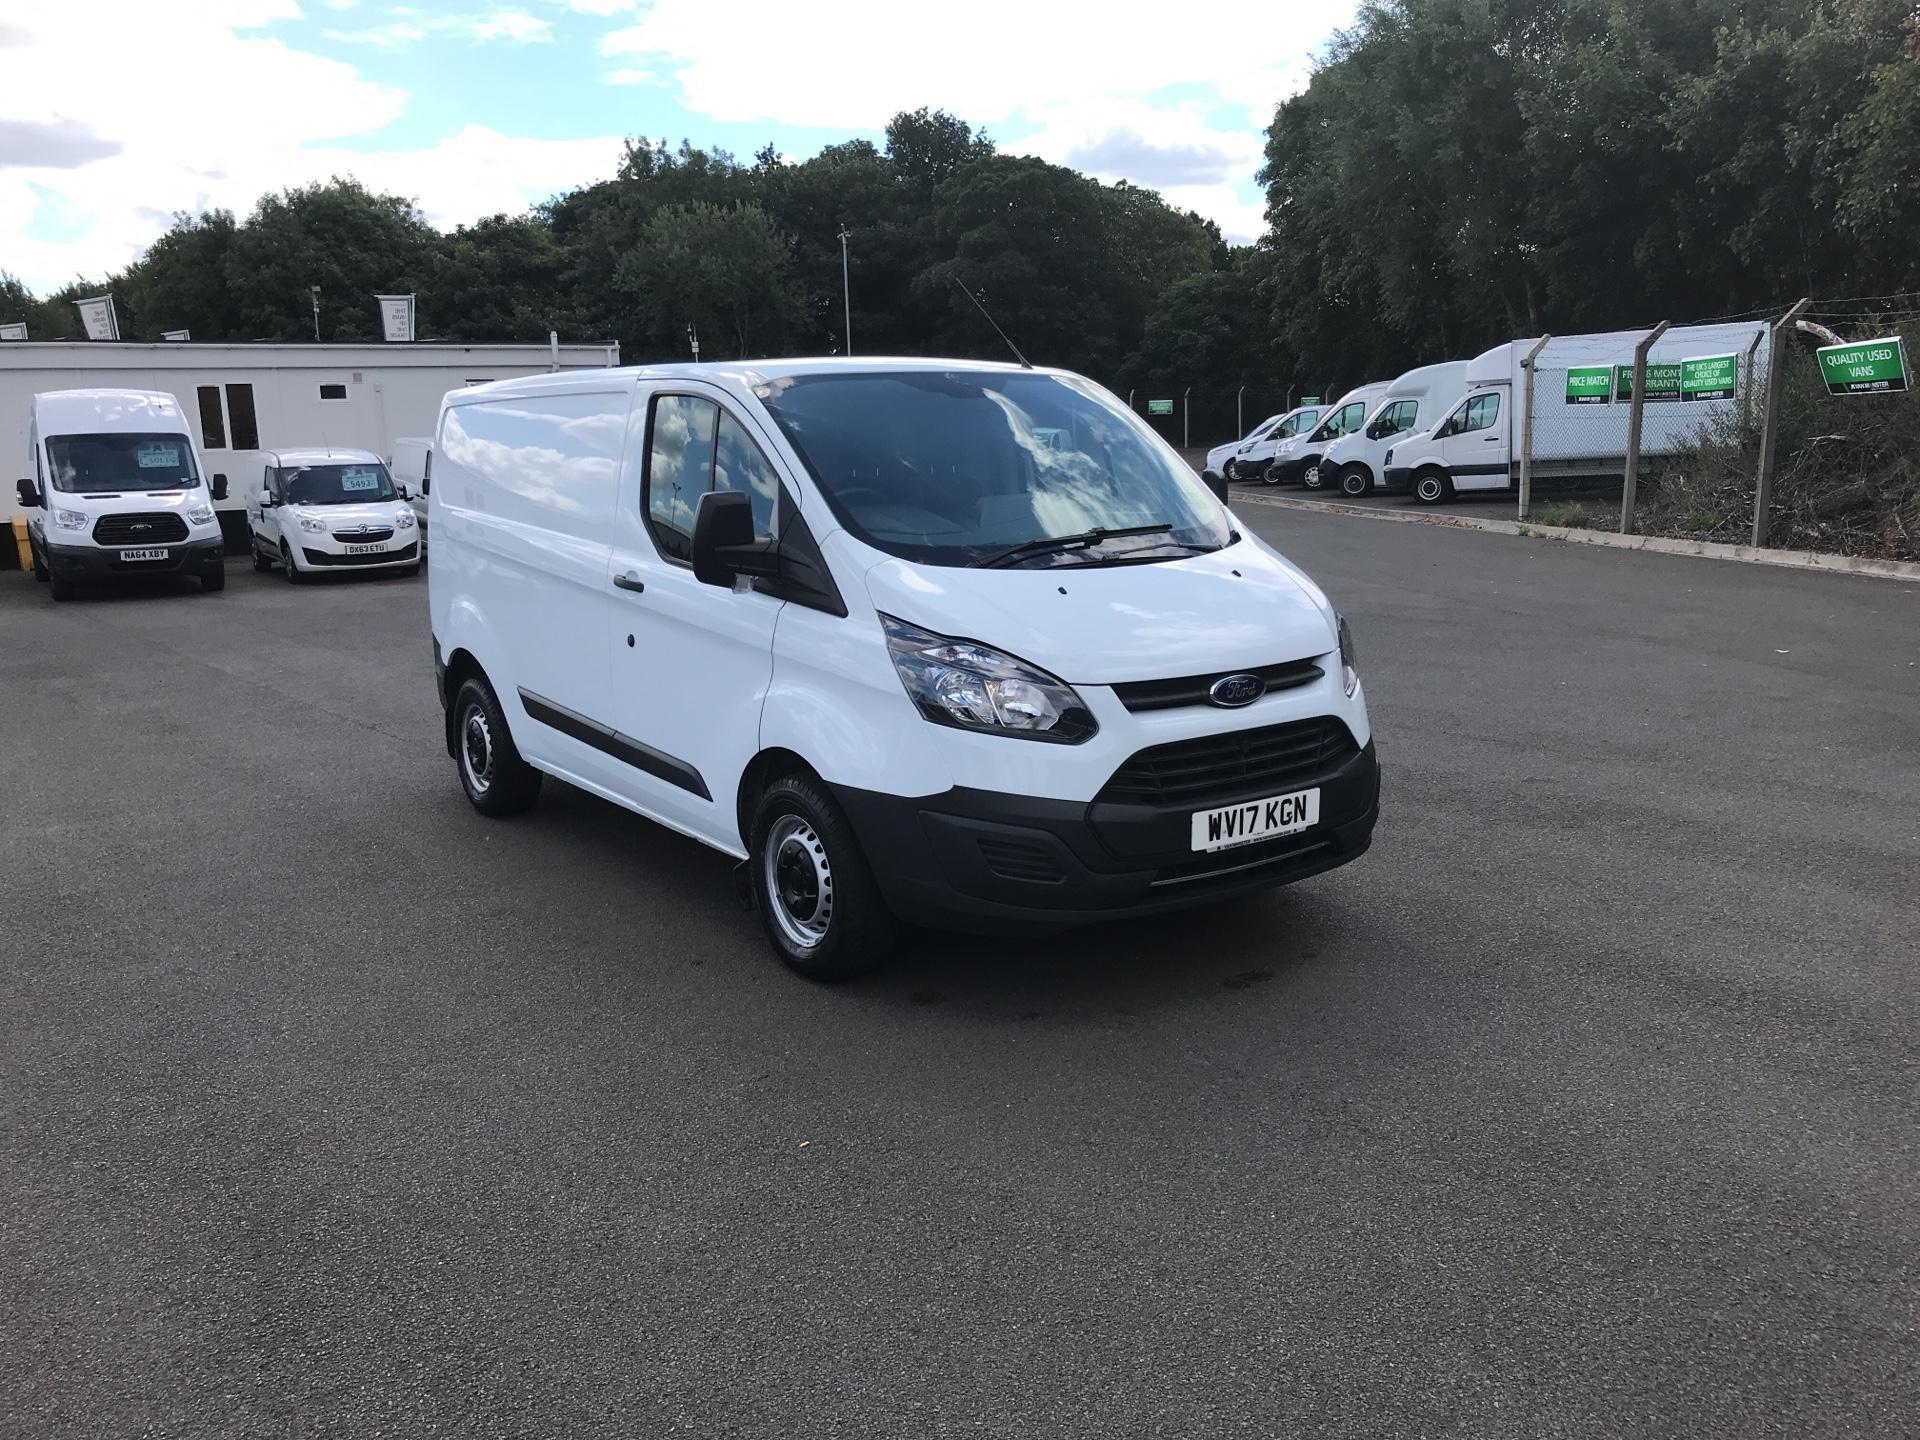 2017 Ford Transit Custom  290 L1 DIESEL FWD 2.0 TDCI 105PS LOW ROOF VAN EURO 6 (WV17KGN)